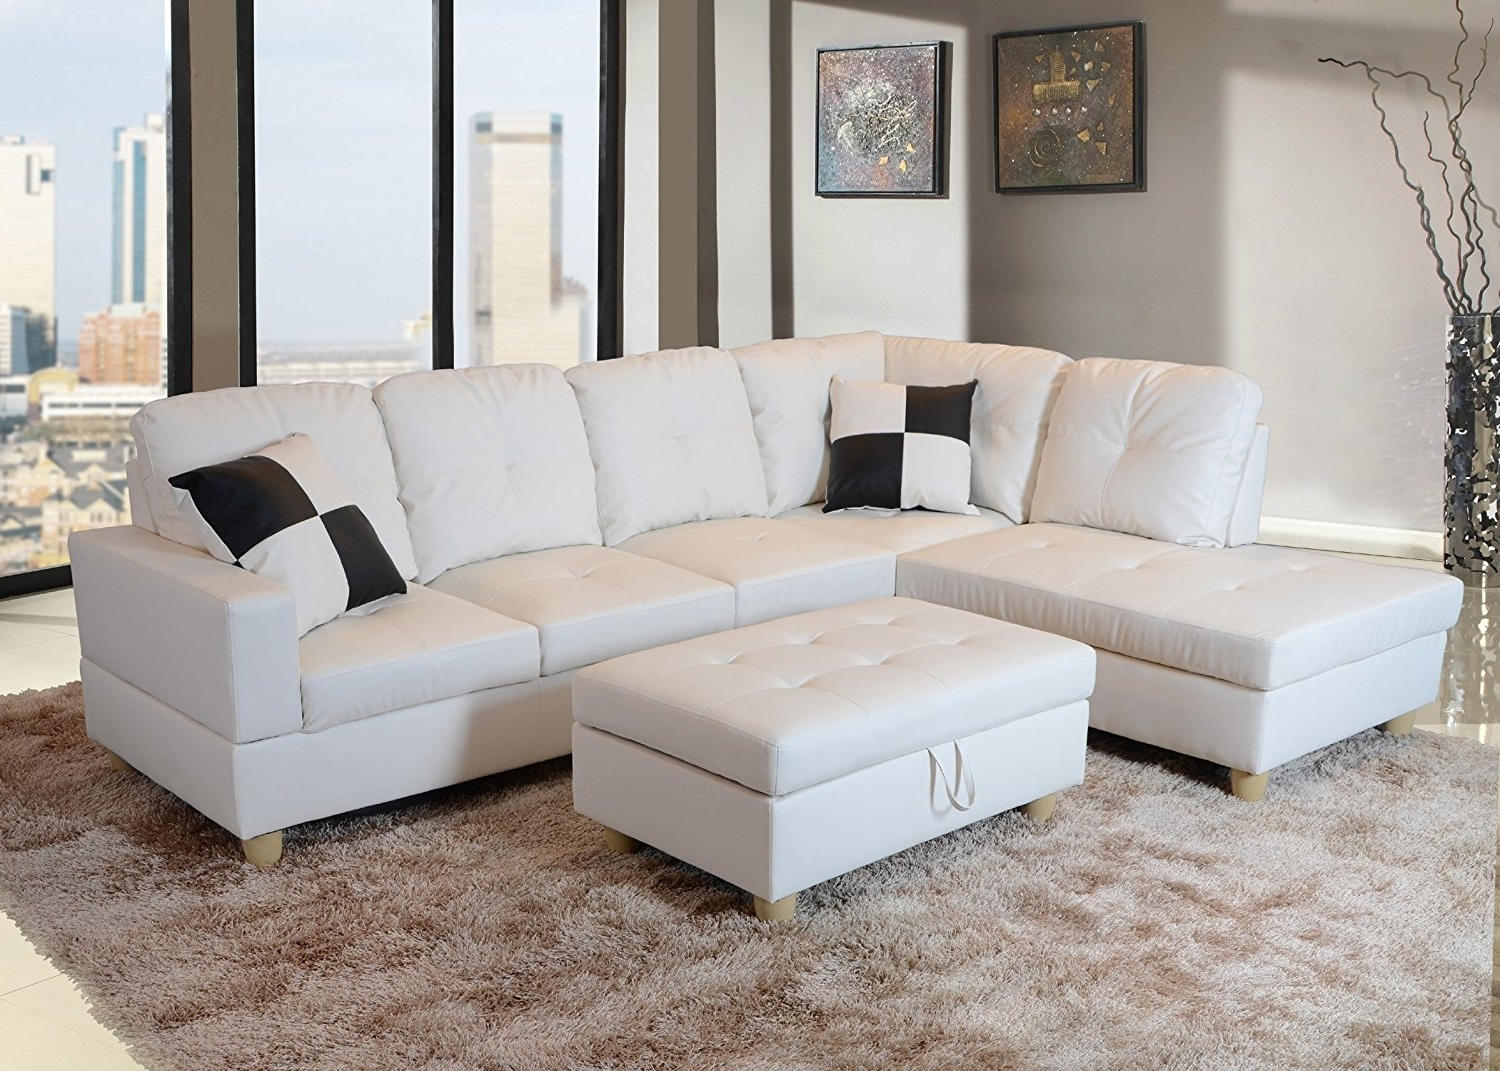 Faux Leather Sectional Sofas Within Current Amazon: Lifestyle Faux Leather Right Facing Sectional Sofa Set (View 7 of 15)